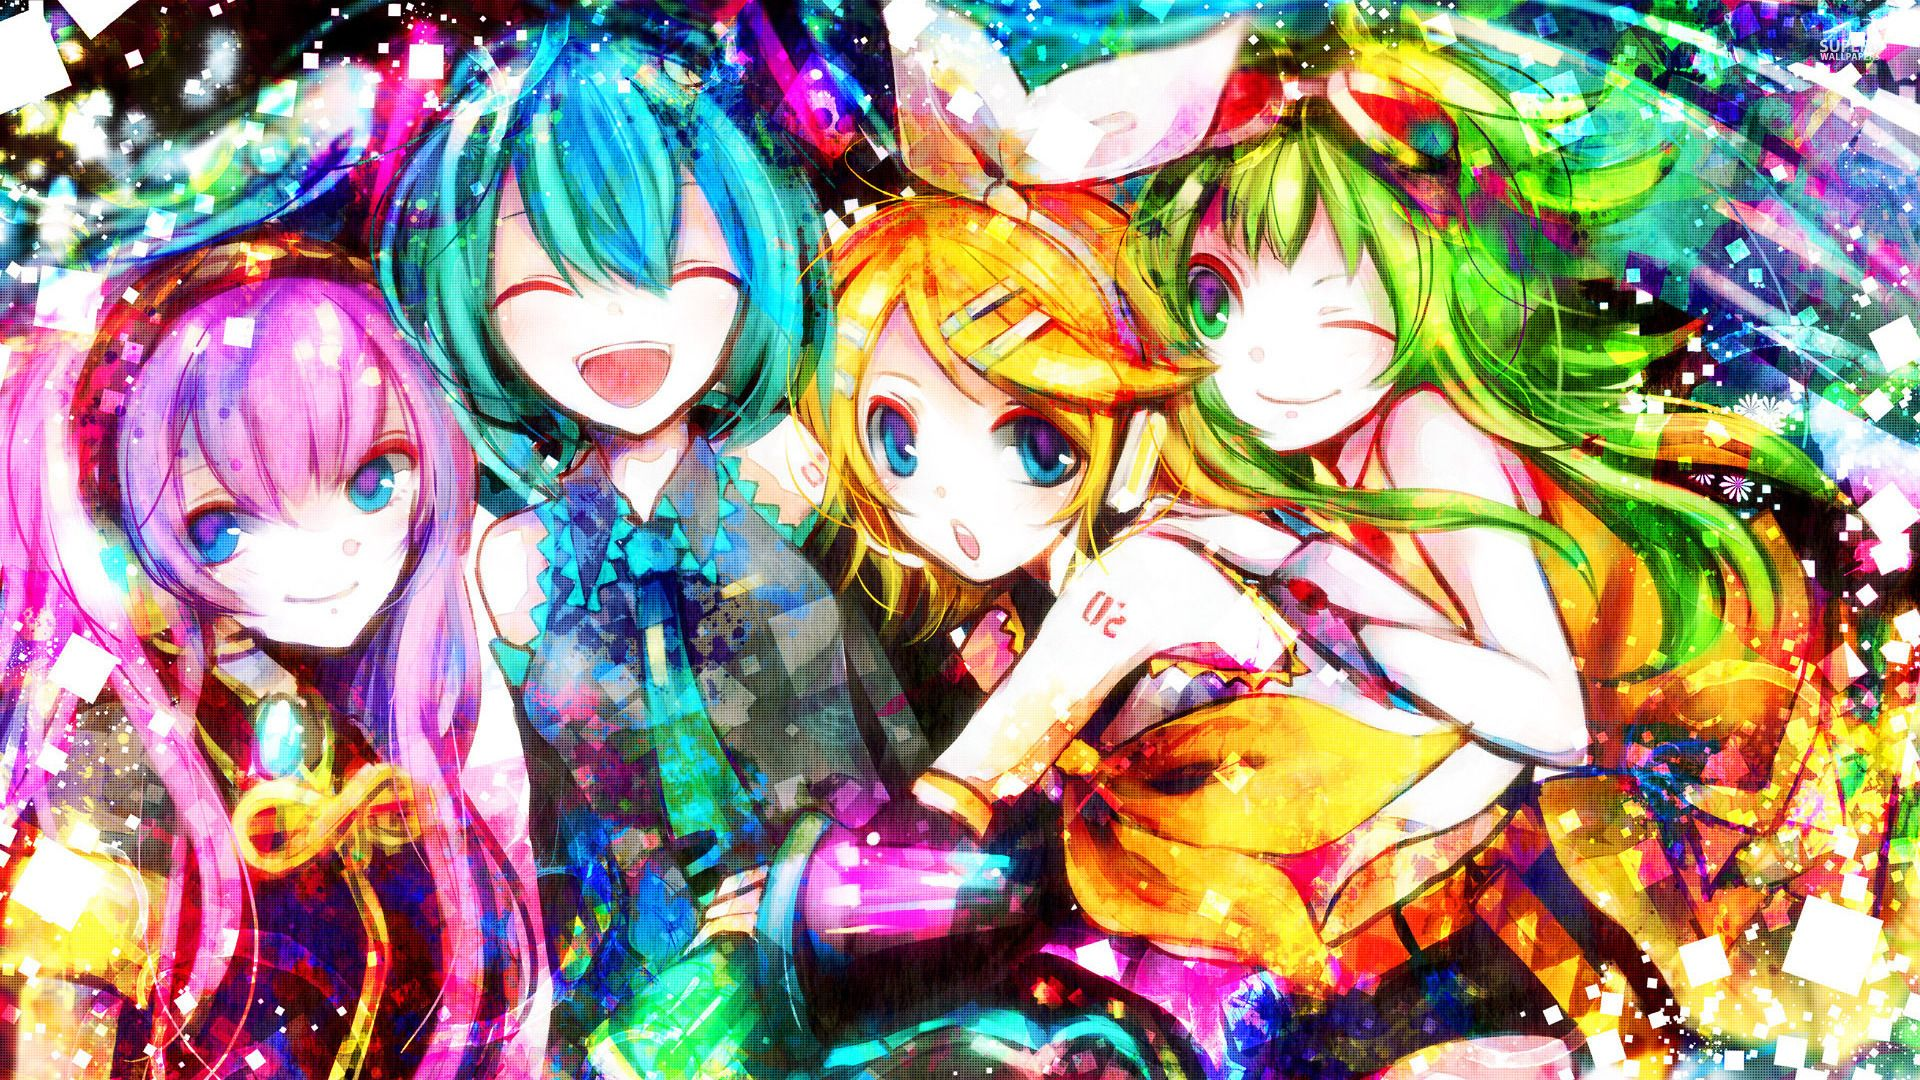 1000+ images about *Vocaloid* on Pinterest